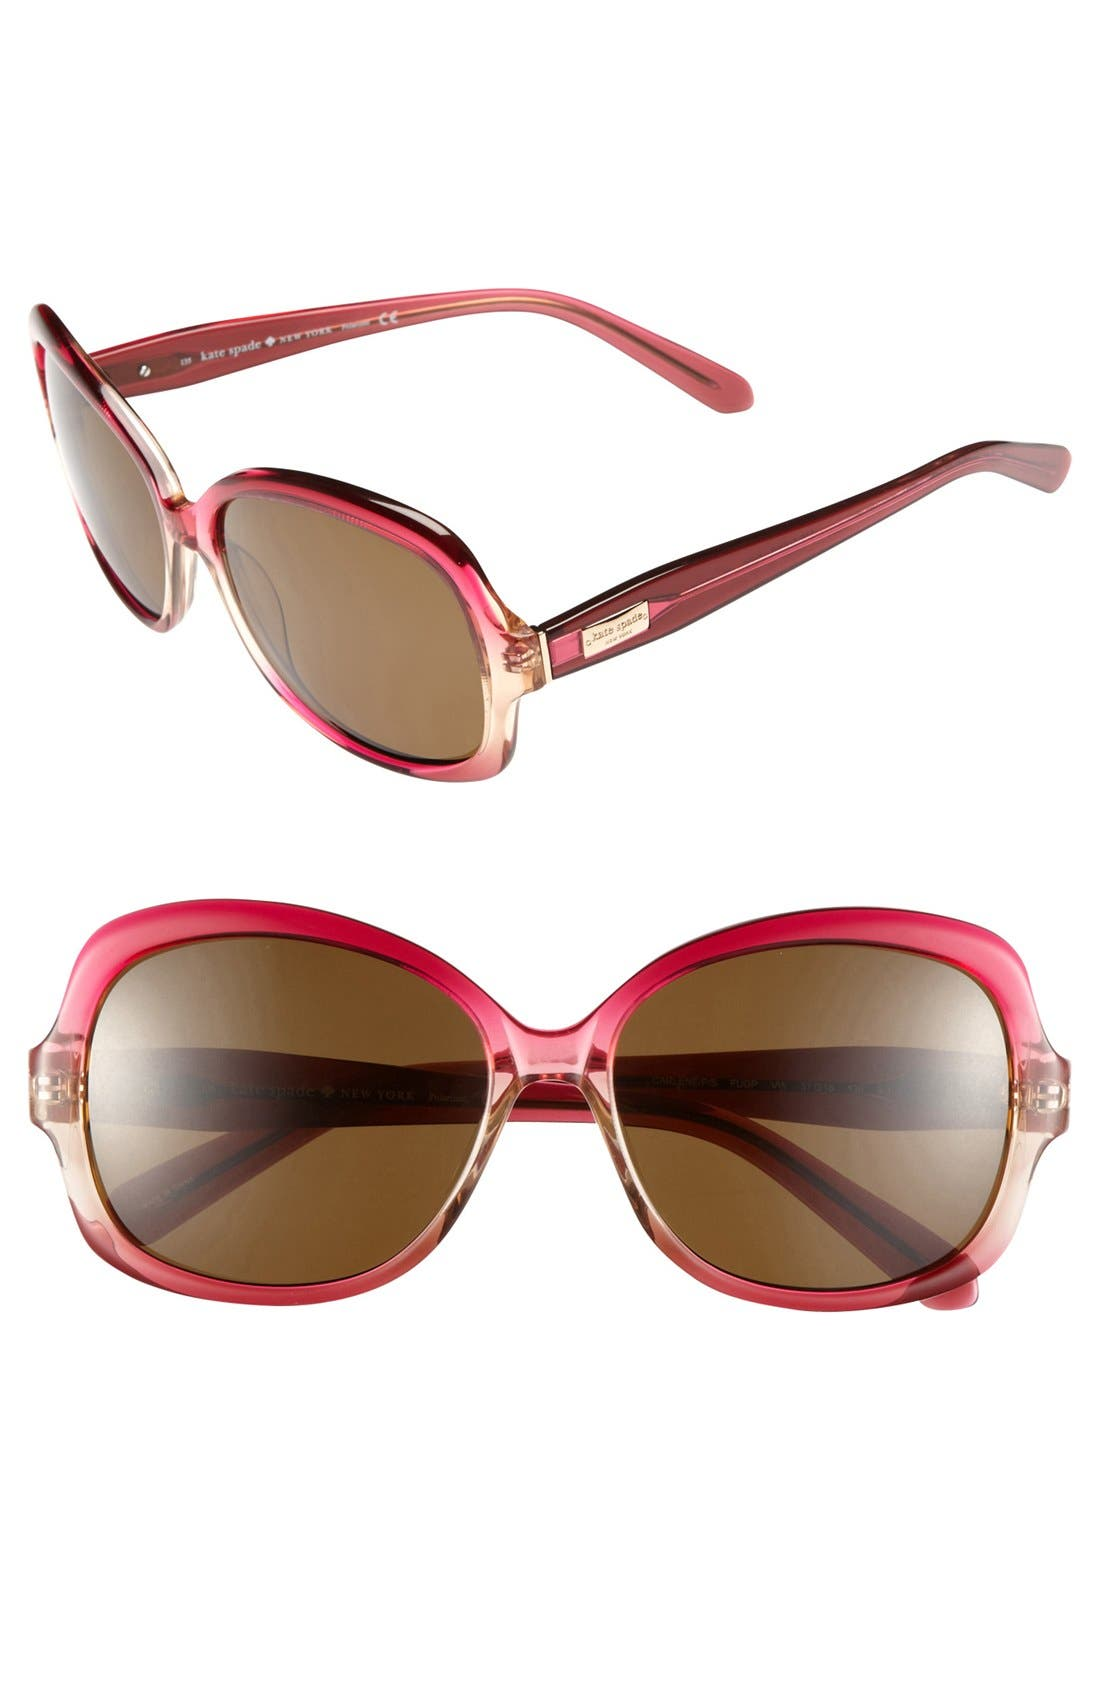 Alternate Image 1 Selected - kate spade new york 'carlene' 57mm polarized sunglasses